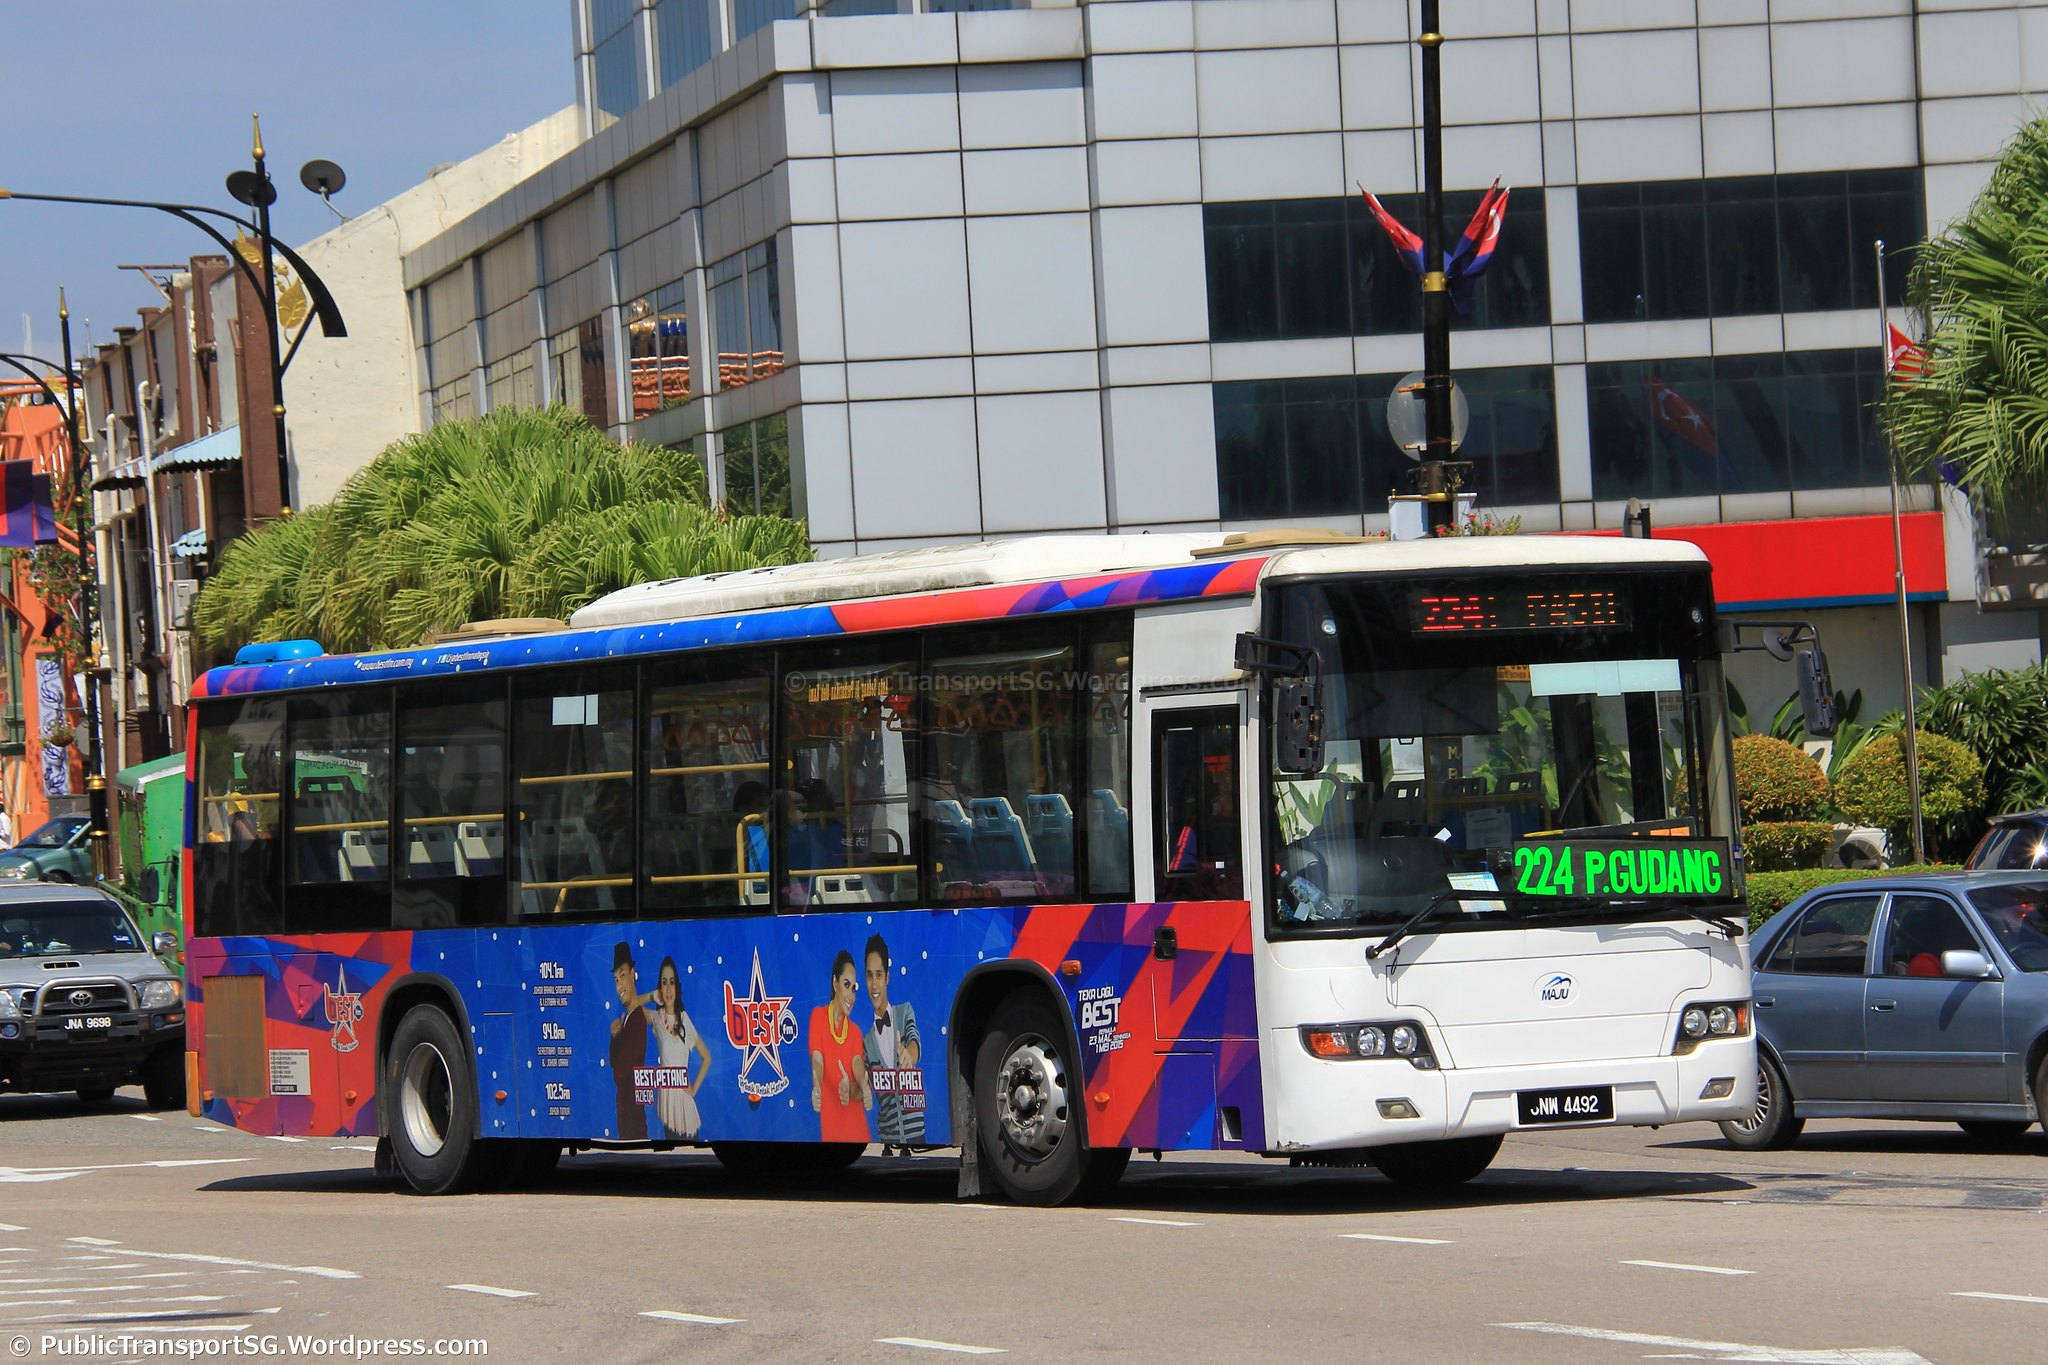 maju bus service 224 | land transport guru